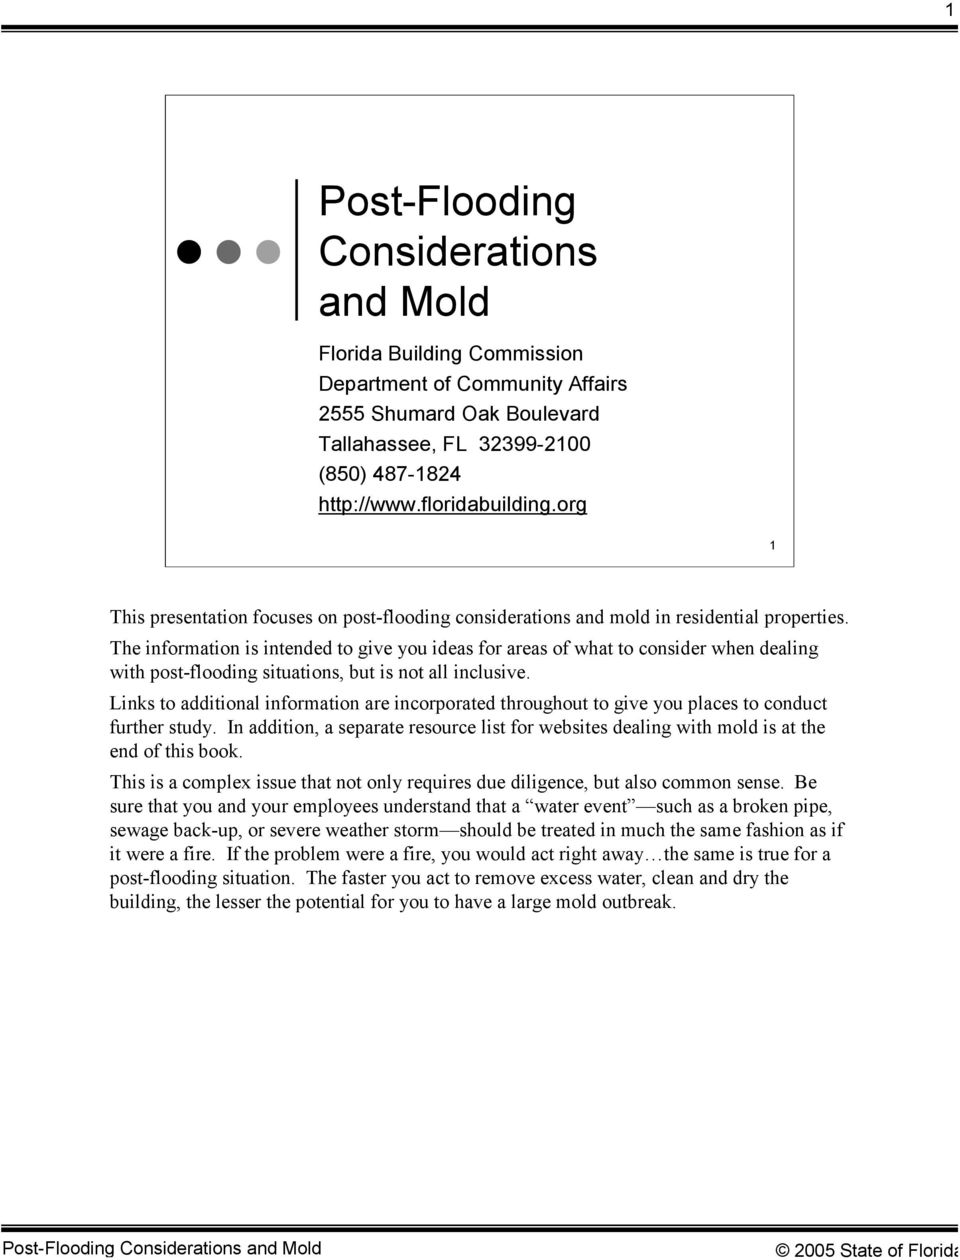 The information is intended to give you ideas for areas of what to consider when dealing with post-flooding situations, but is not all inclusive.